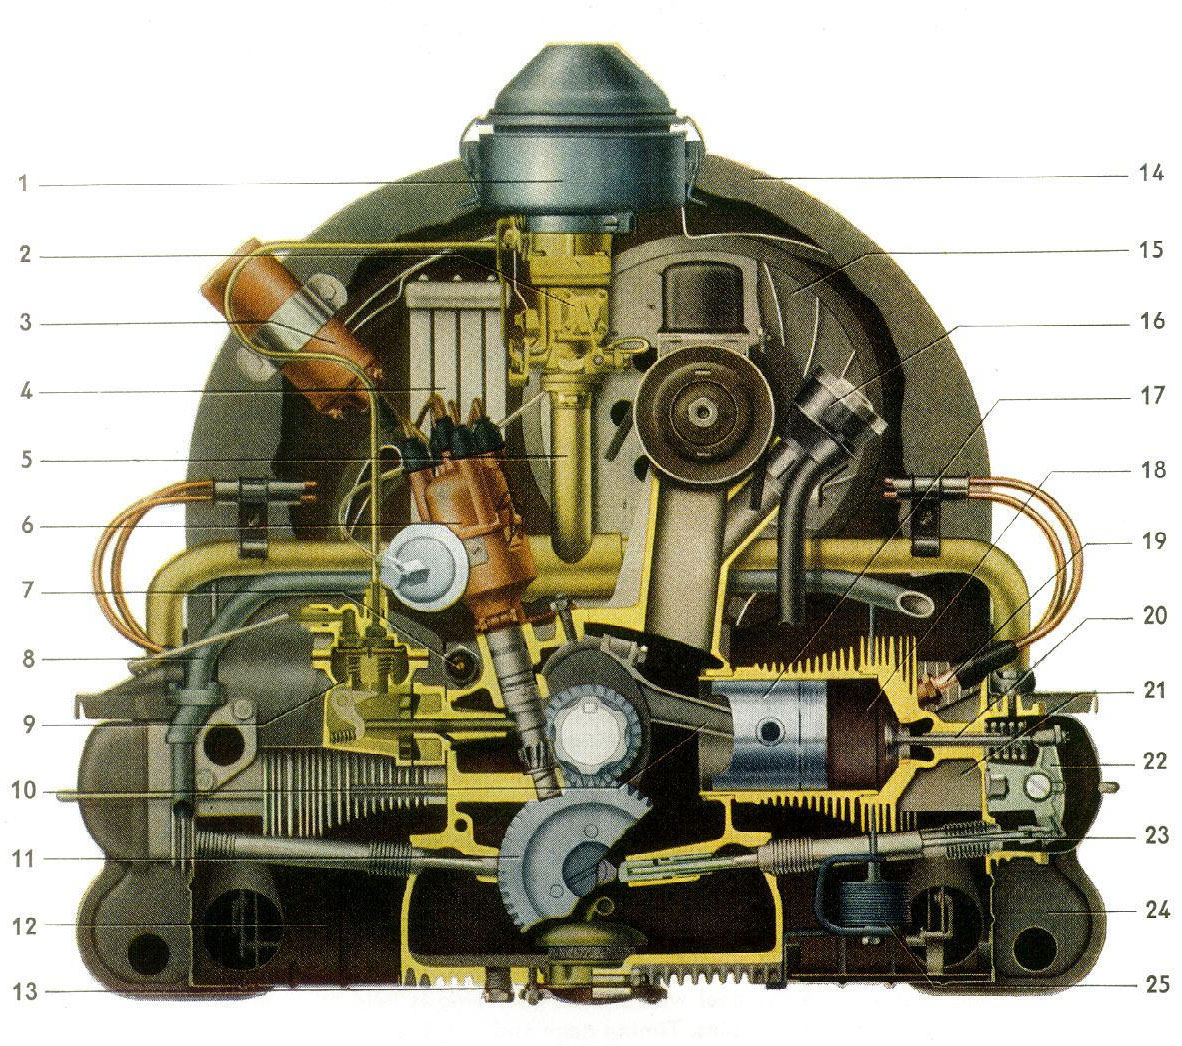 hight resolution of 1970 vw beetle engine diagram wiring diagram today 1970 vw beetle engine wiring diagram 1970 vw engine diagram